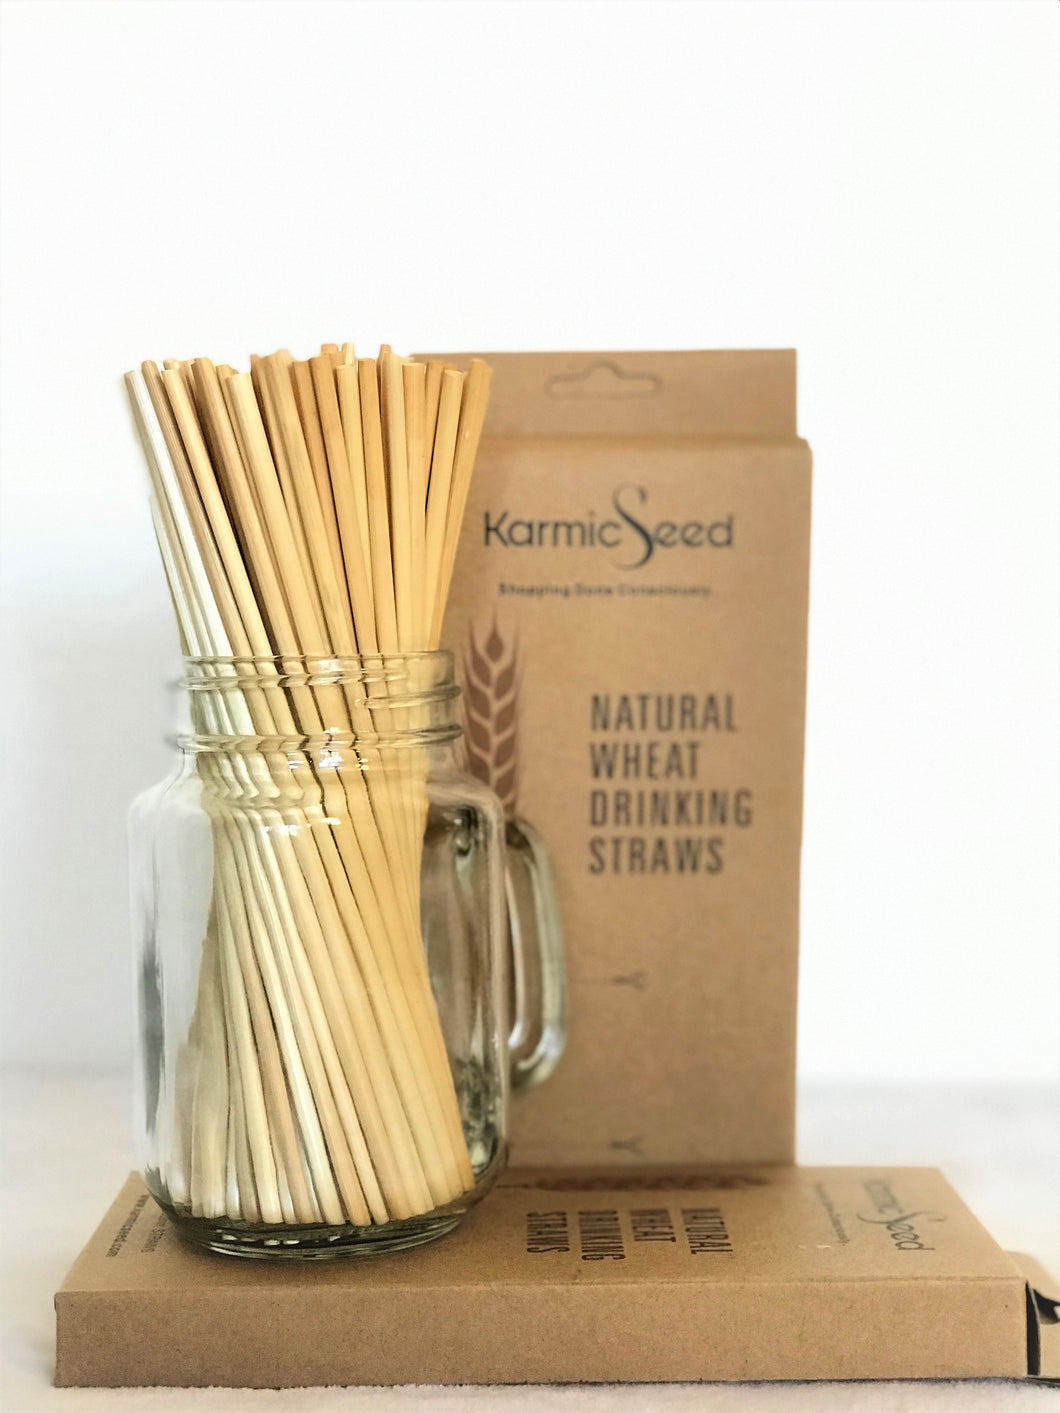 Karmic Seed - Wheat Straw Box 3